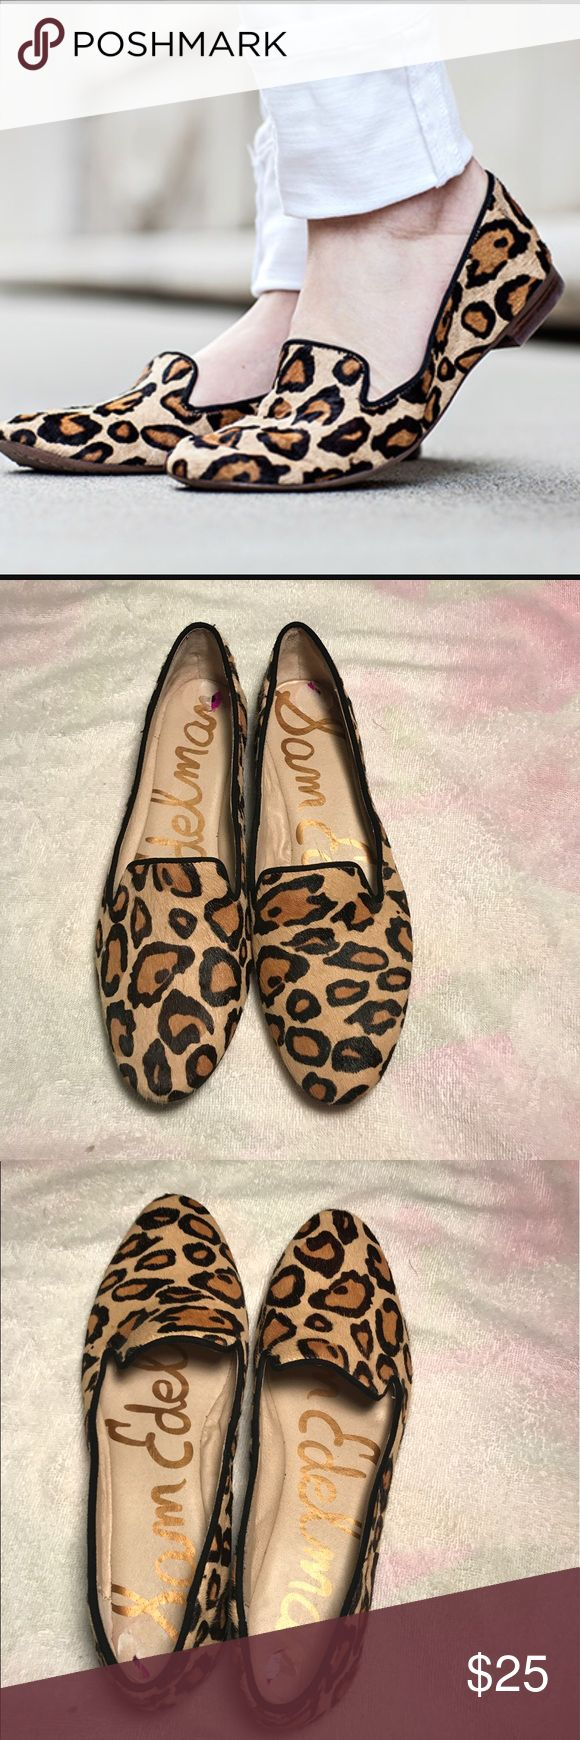 SAM EDELMAN ALVIN LEOPARD PRINT LOAFERS Used. Please see pictures Sam Edelman Shoes Flats & Loafers